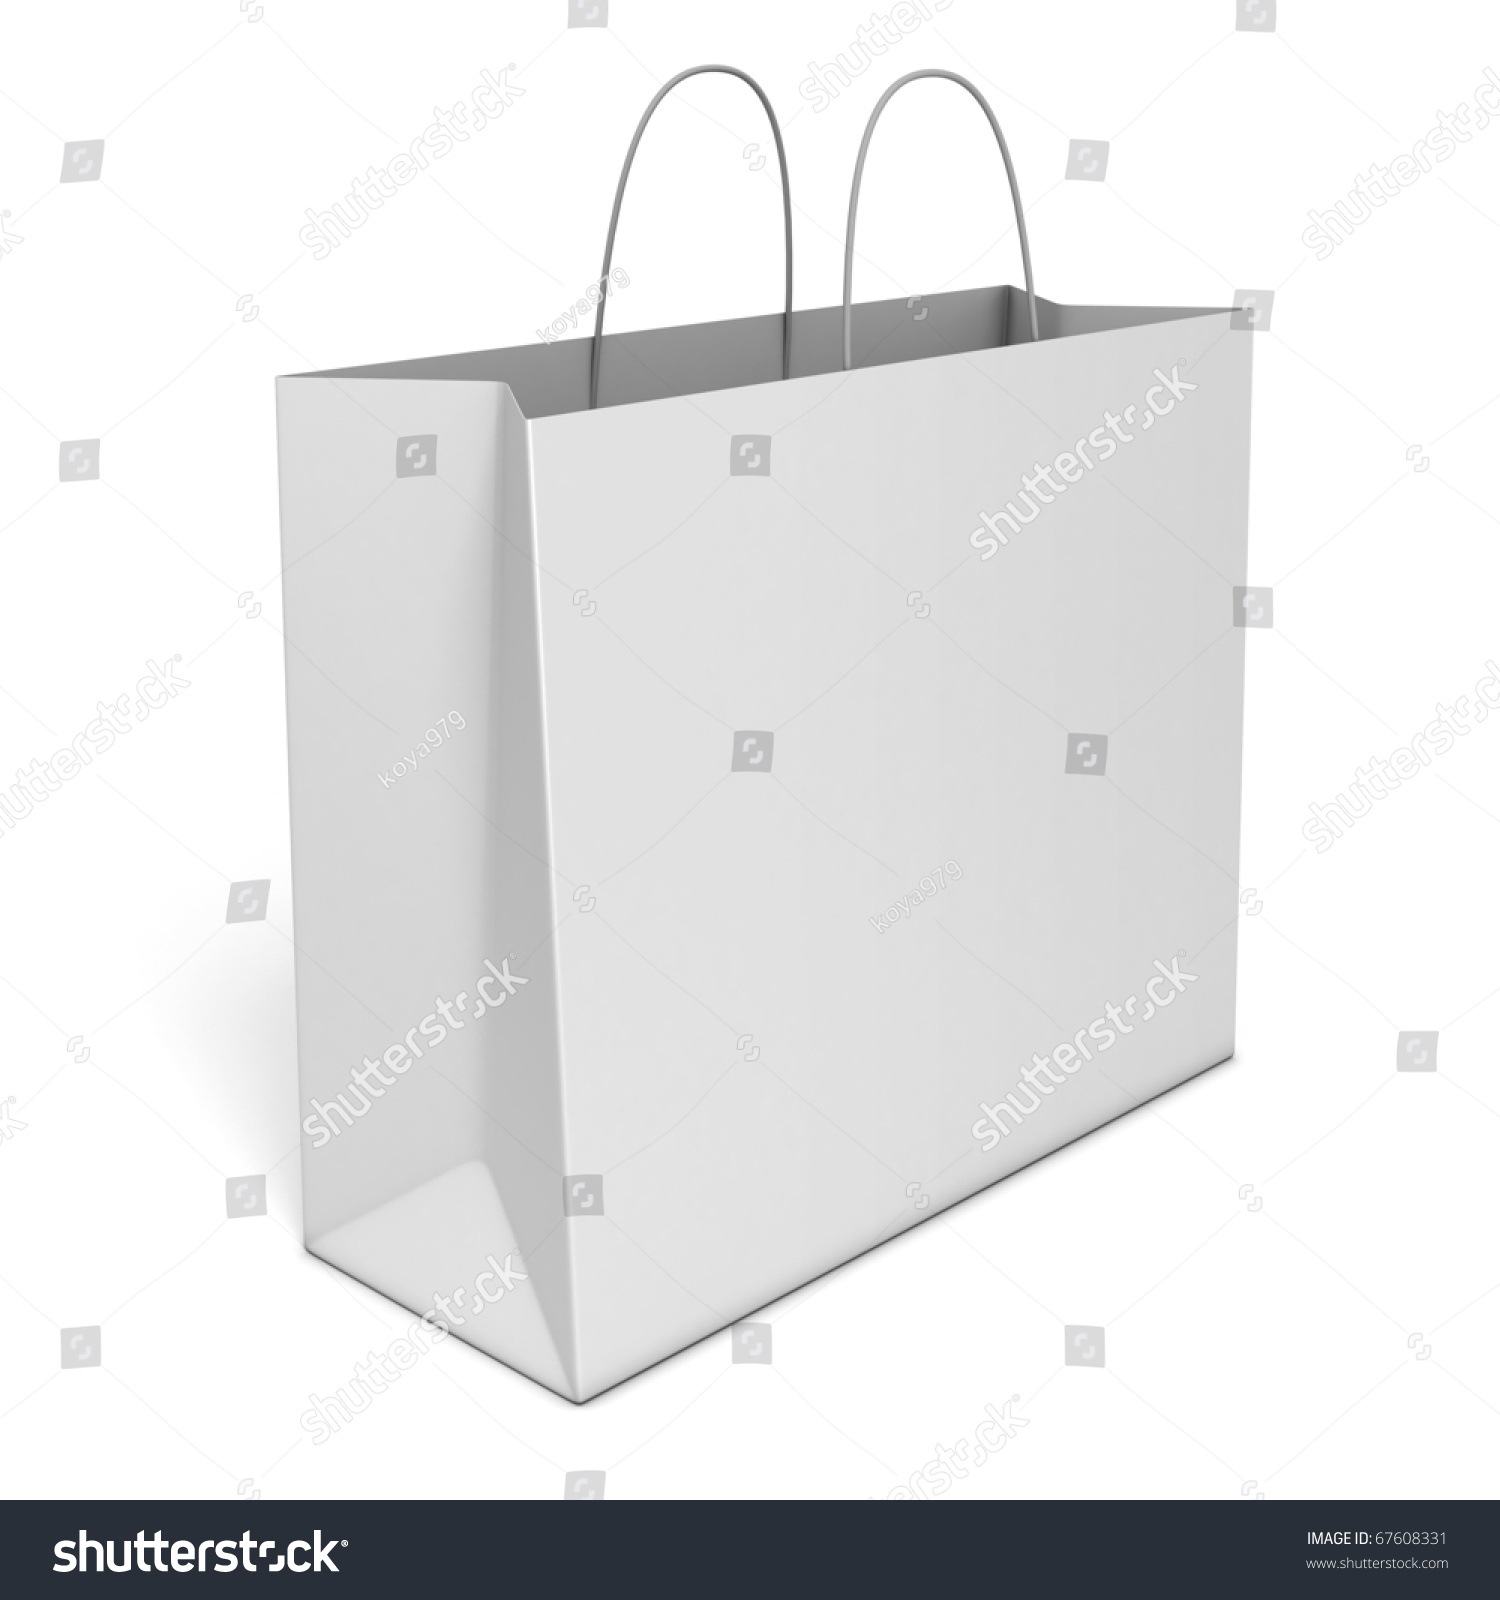 Blank Shopping Bag Isolated Over White Background Stock Photo ...